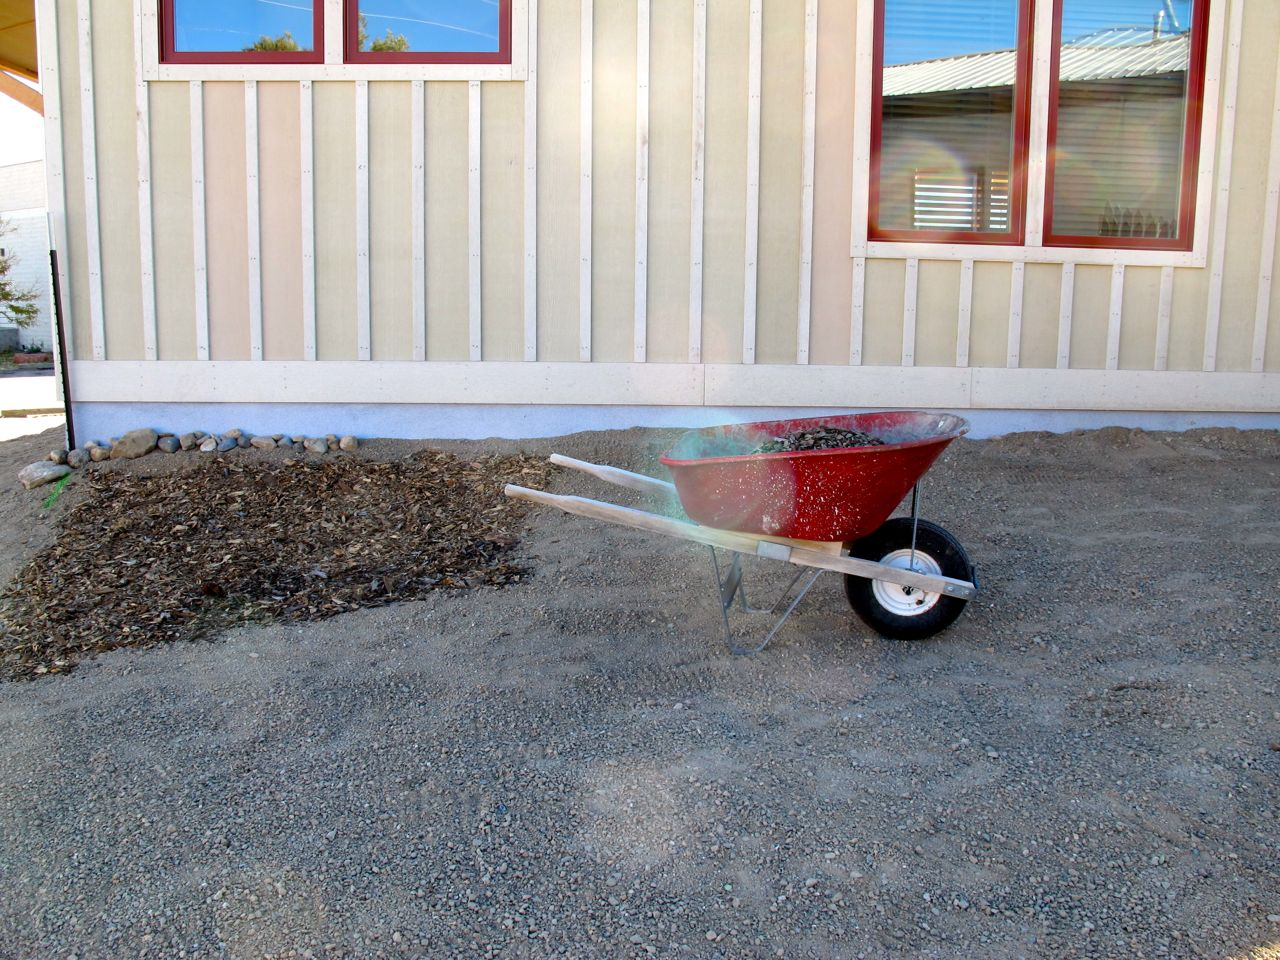 Spreading mulch over the seeds. (The large windows are my office.)